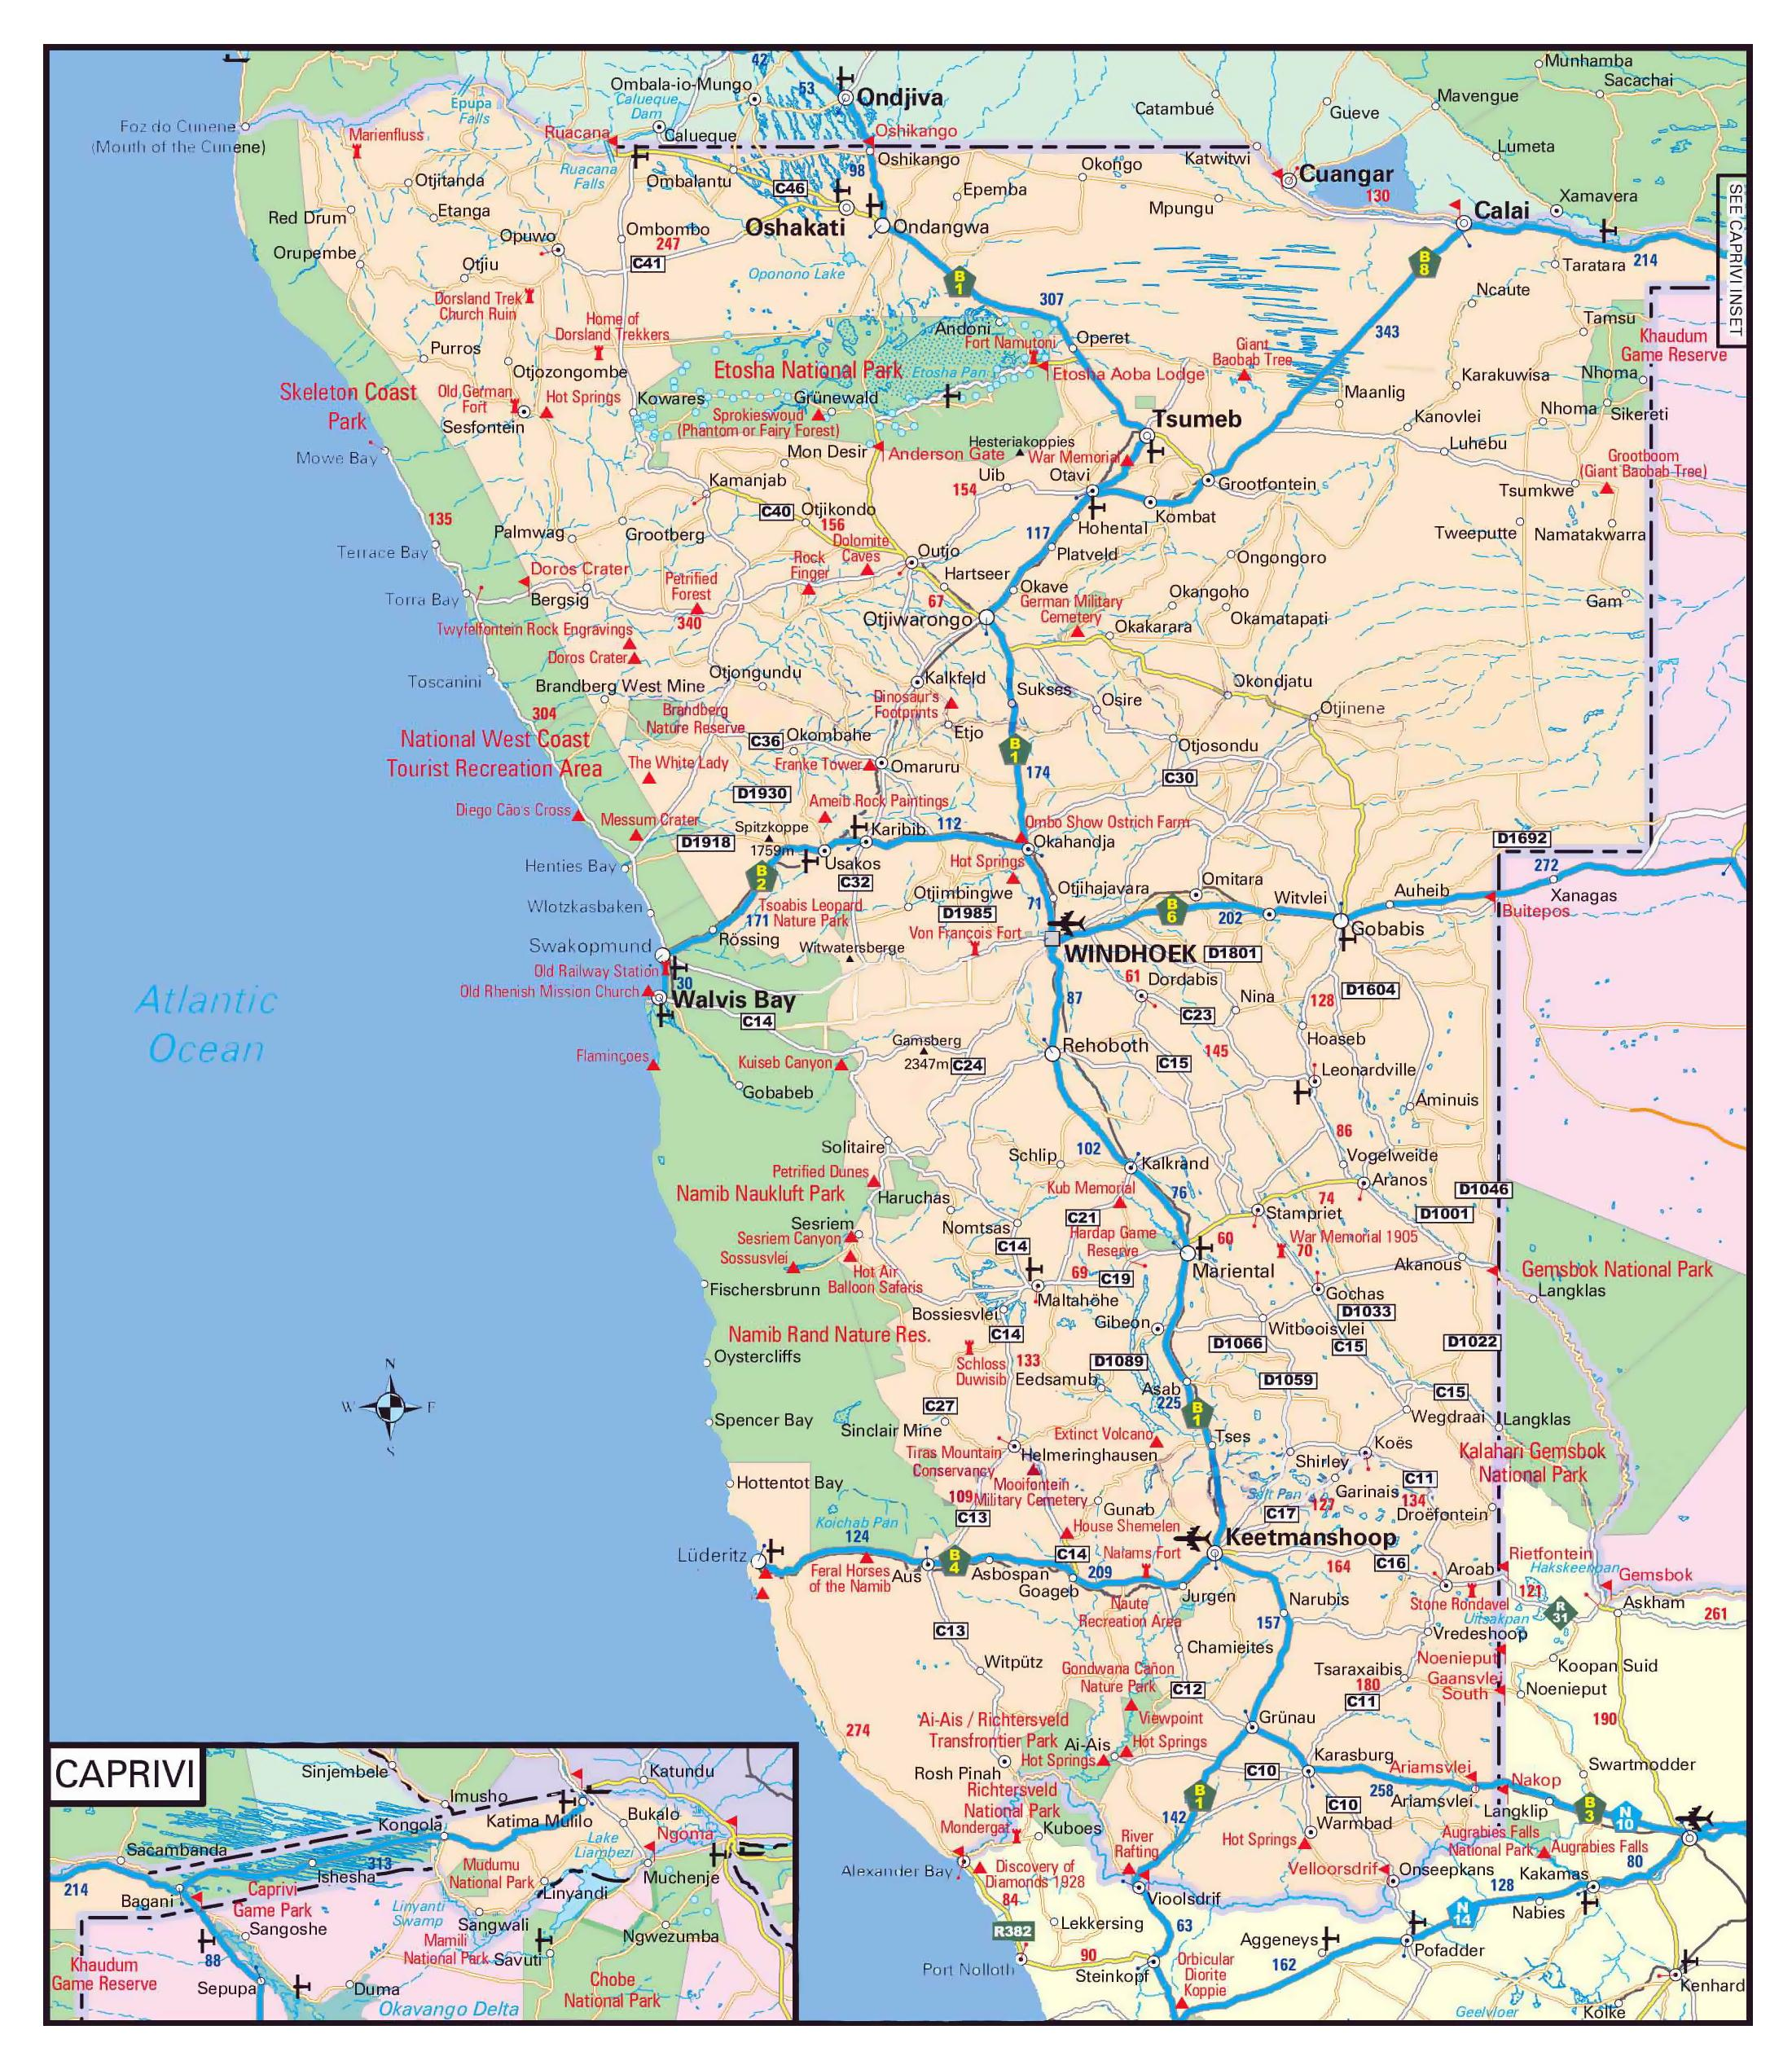 Namibia road map   Namibia roads map (Southern Africa   Africa)